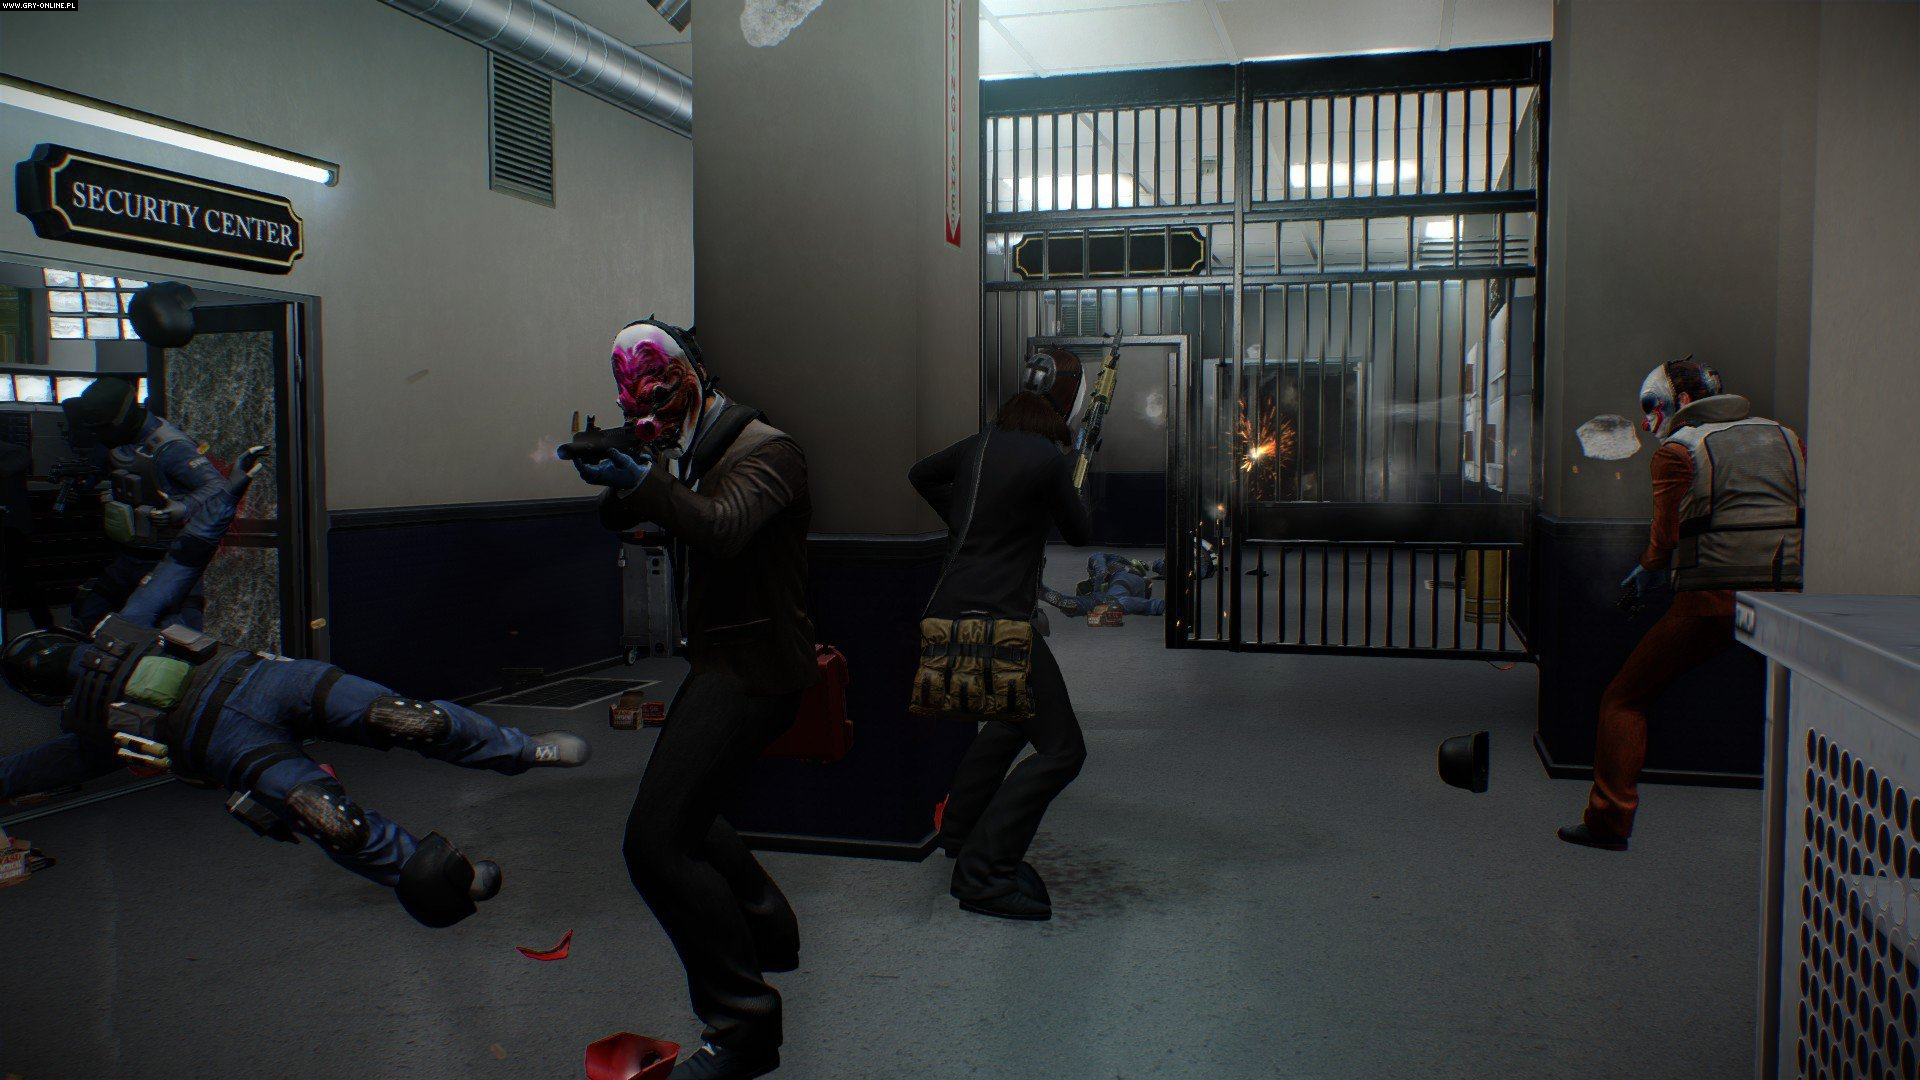 PayDay 2 PC, X360, PS3, PS4, XONE Gry Screen 5/114, OVERKILL Software, 505 Games